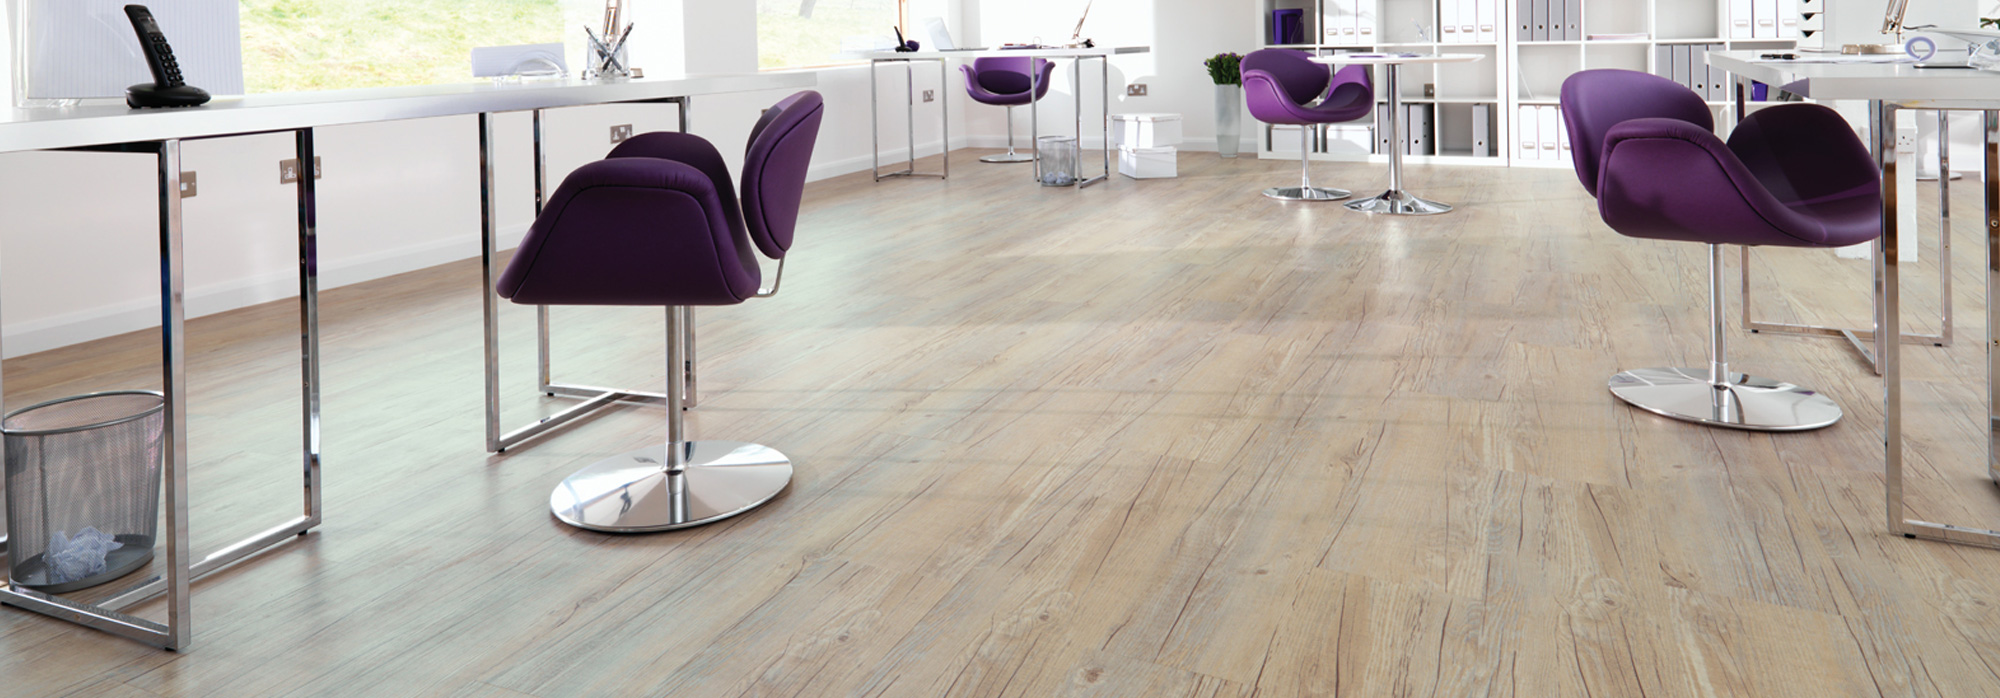 Long Lasting Durable Flooring For Any Location